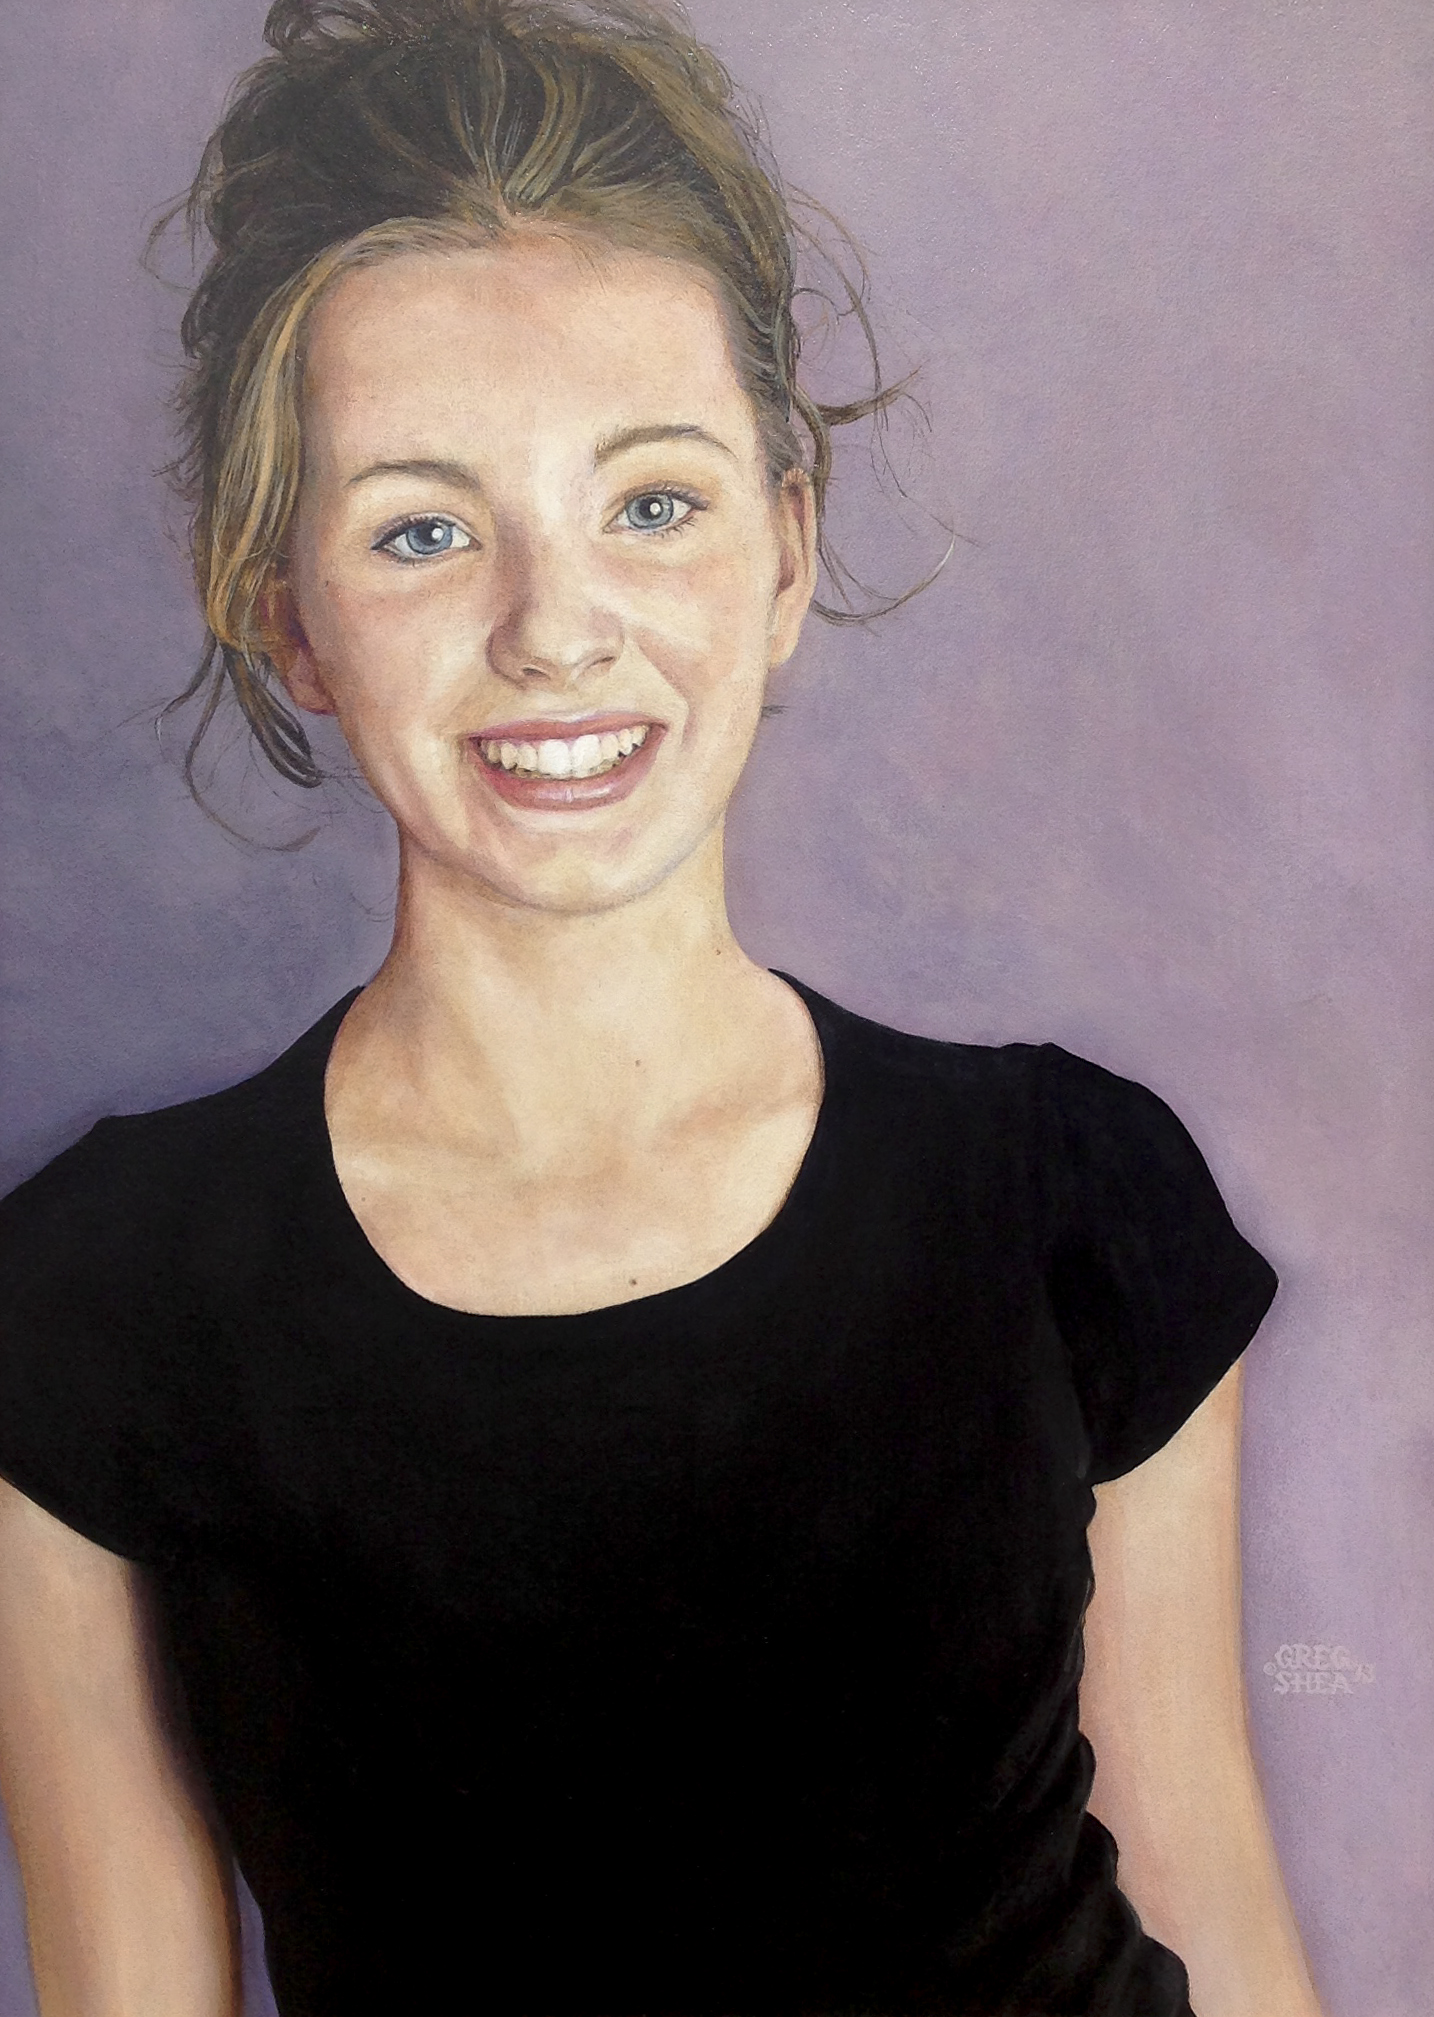 Katie (detail)  , Commission, 2013. Acrylic on board. Private collection.